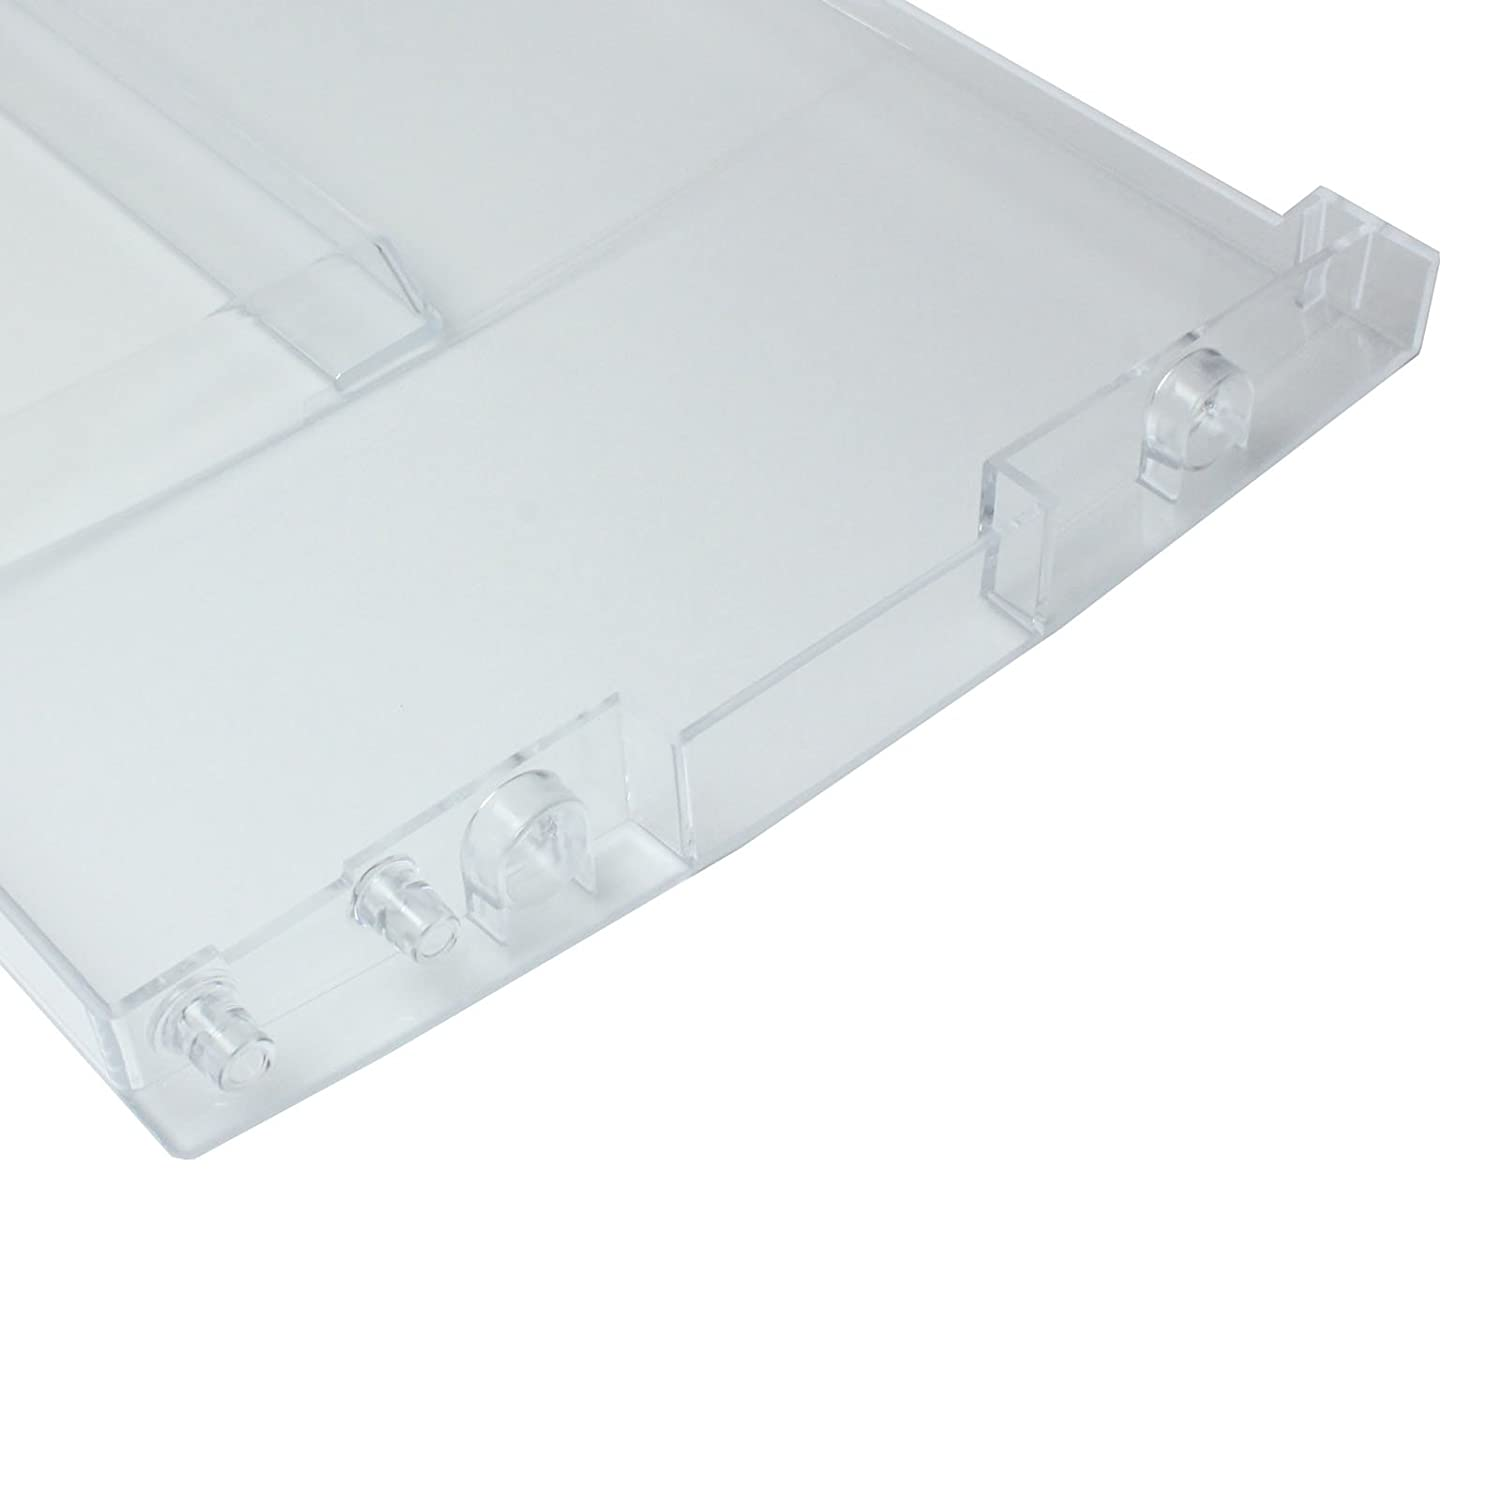 Beko Fridge Freezer Drawer Cover/Basket Front (Clear Plastic) [Energy Class A+++] Beko Group 4331793600